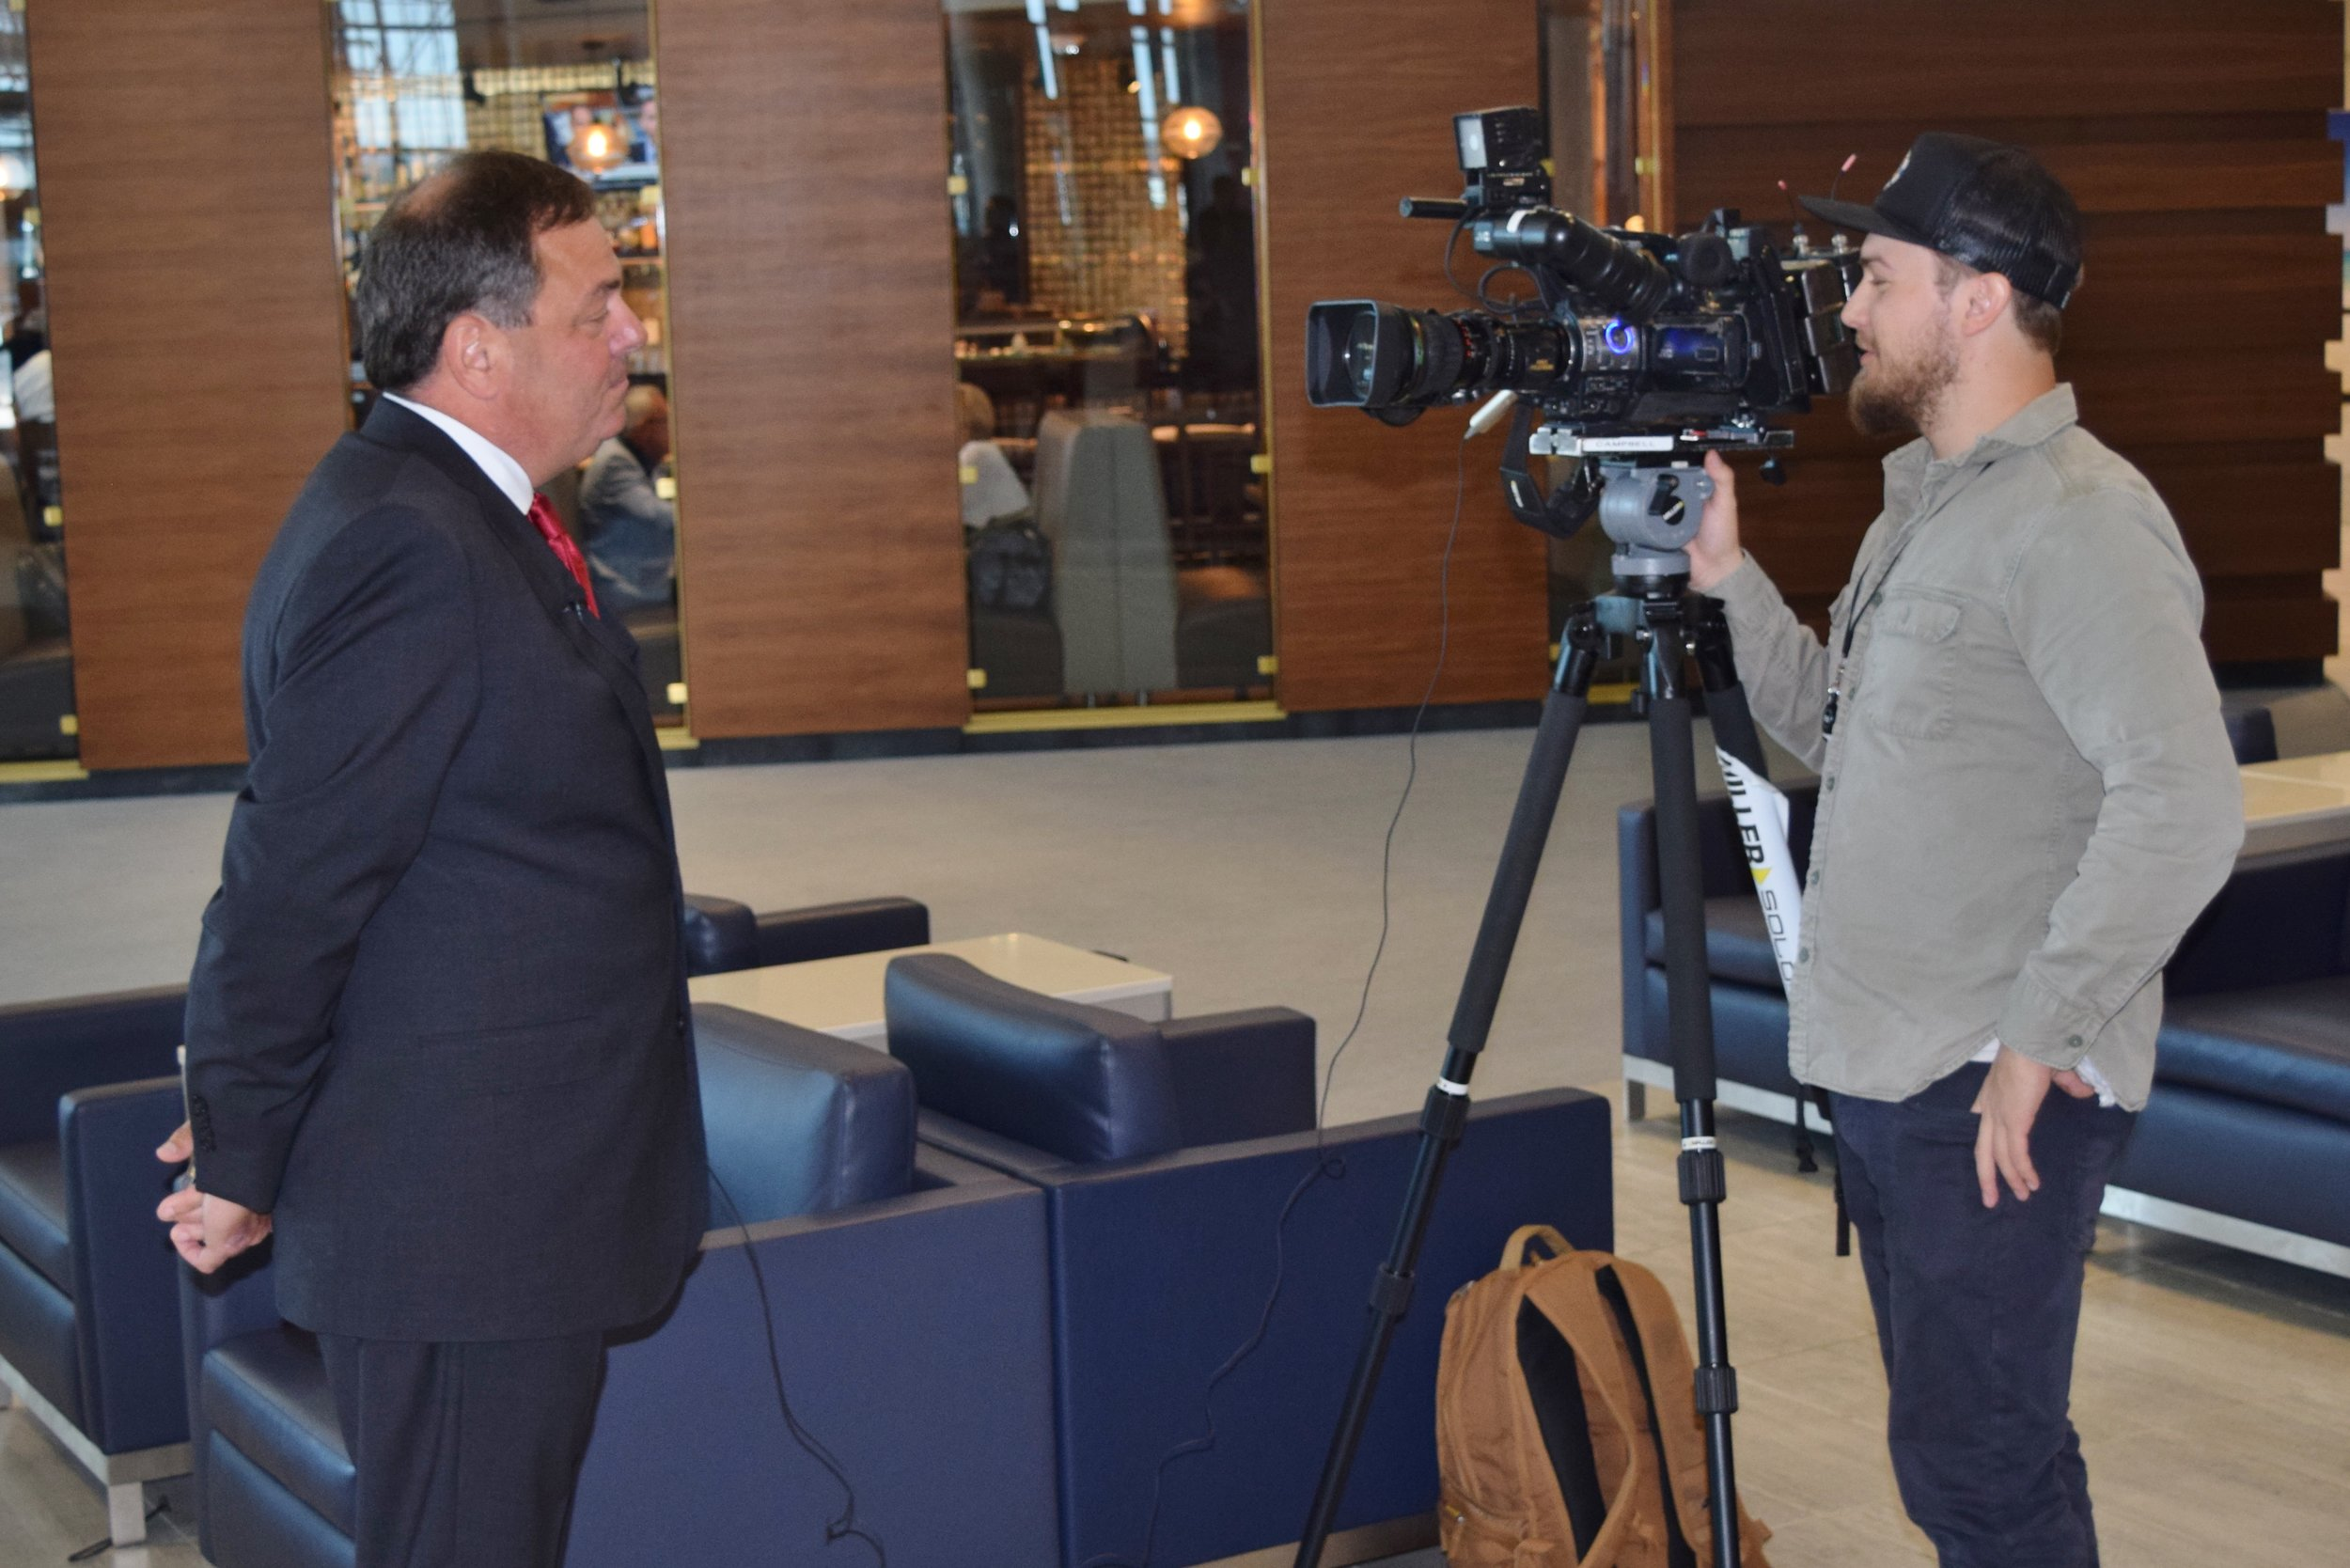 Paul Piro - TV interview - after Press Conference, 9 May '17.JPG